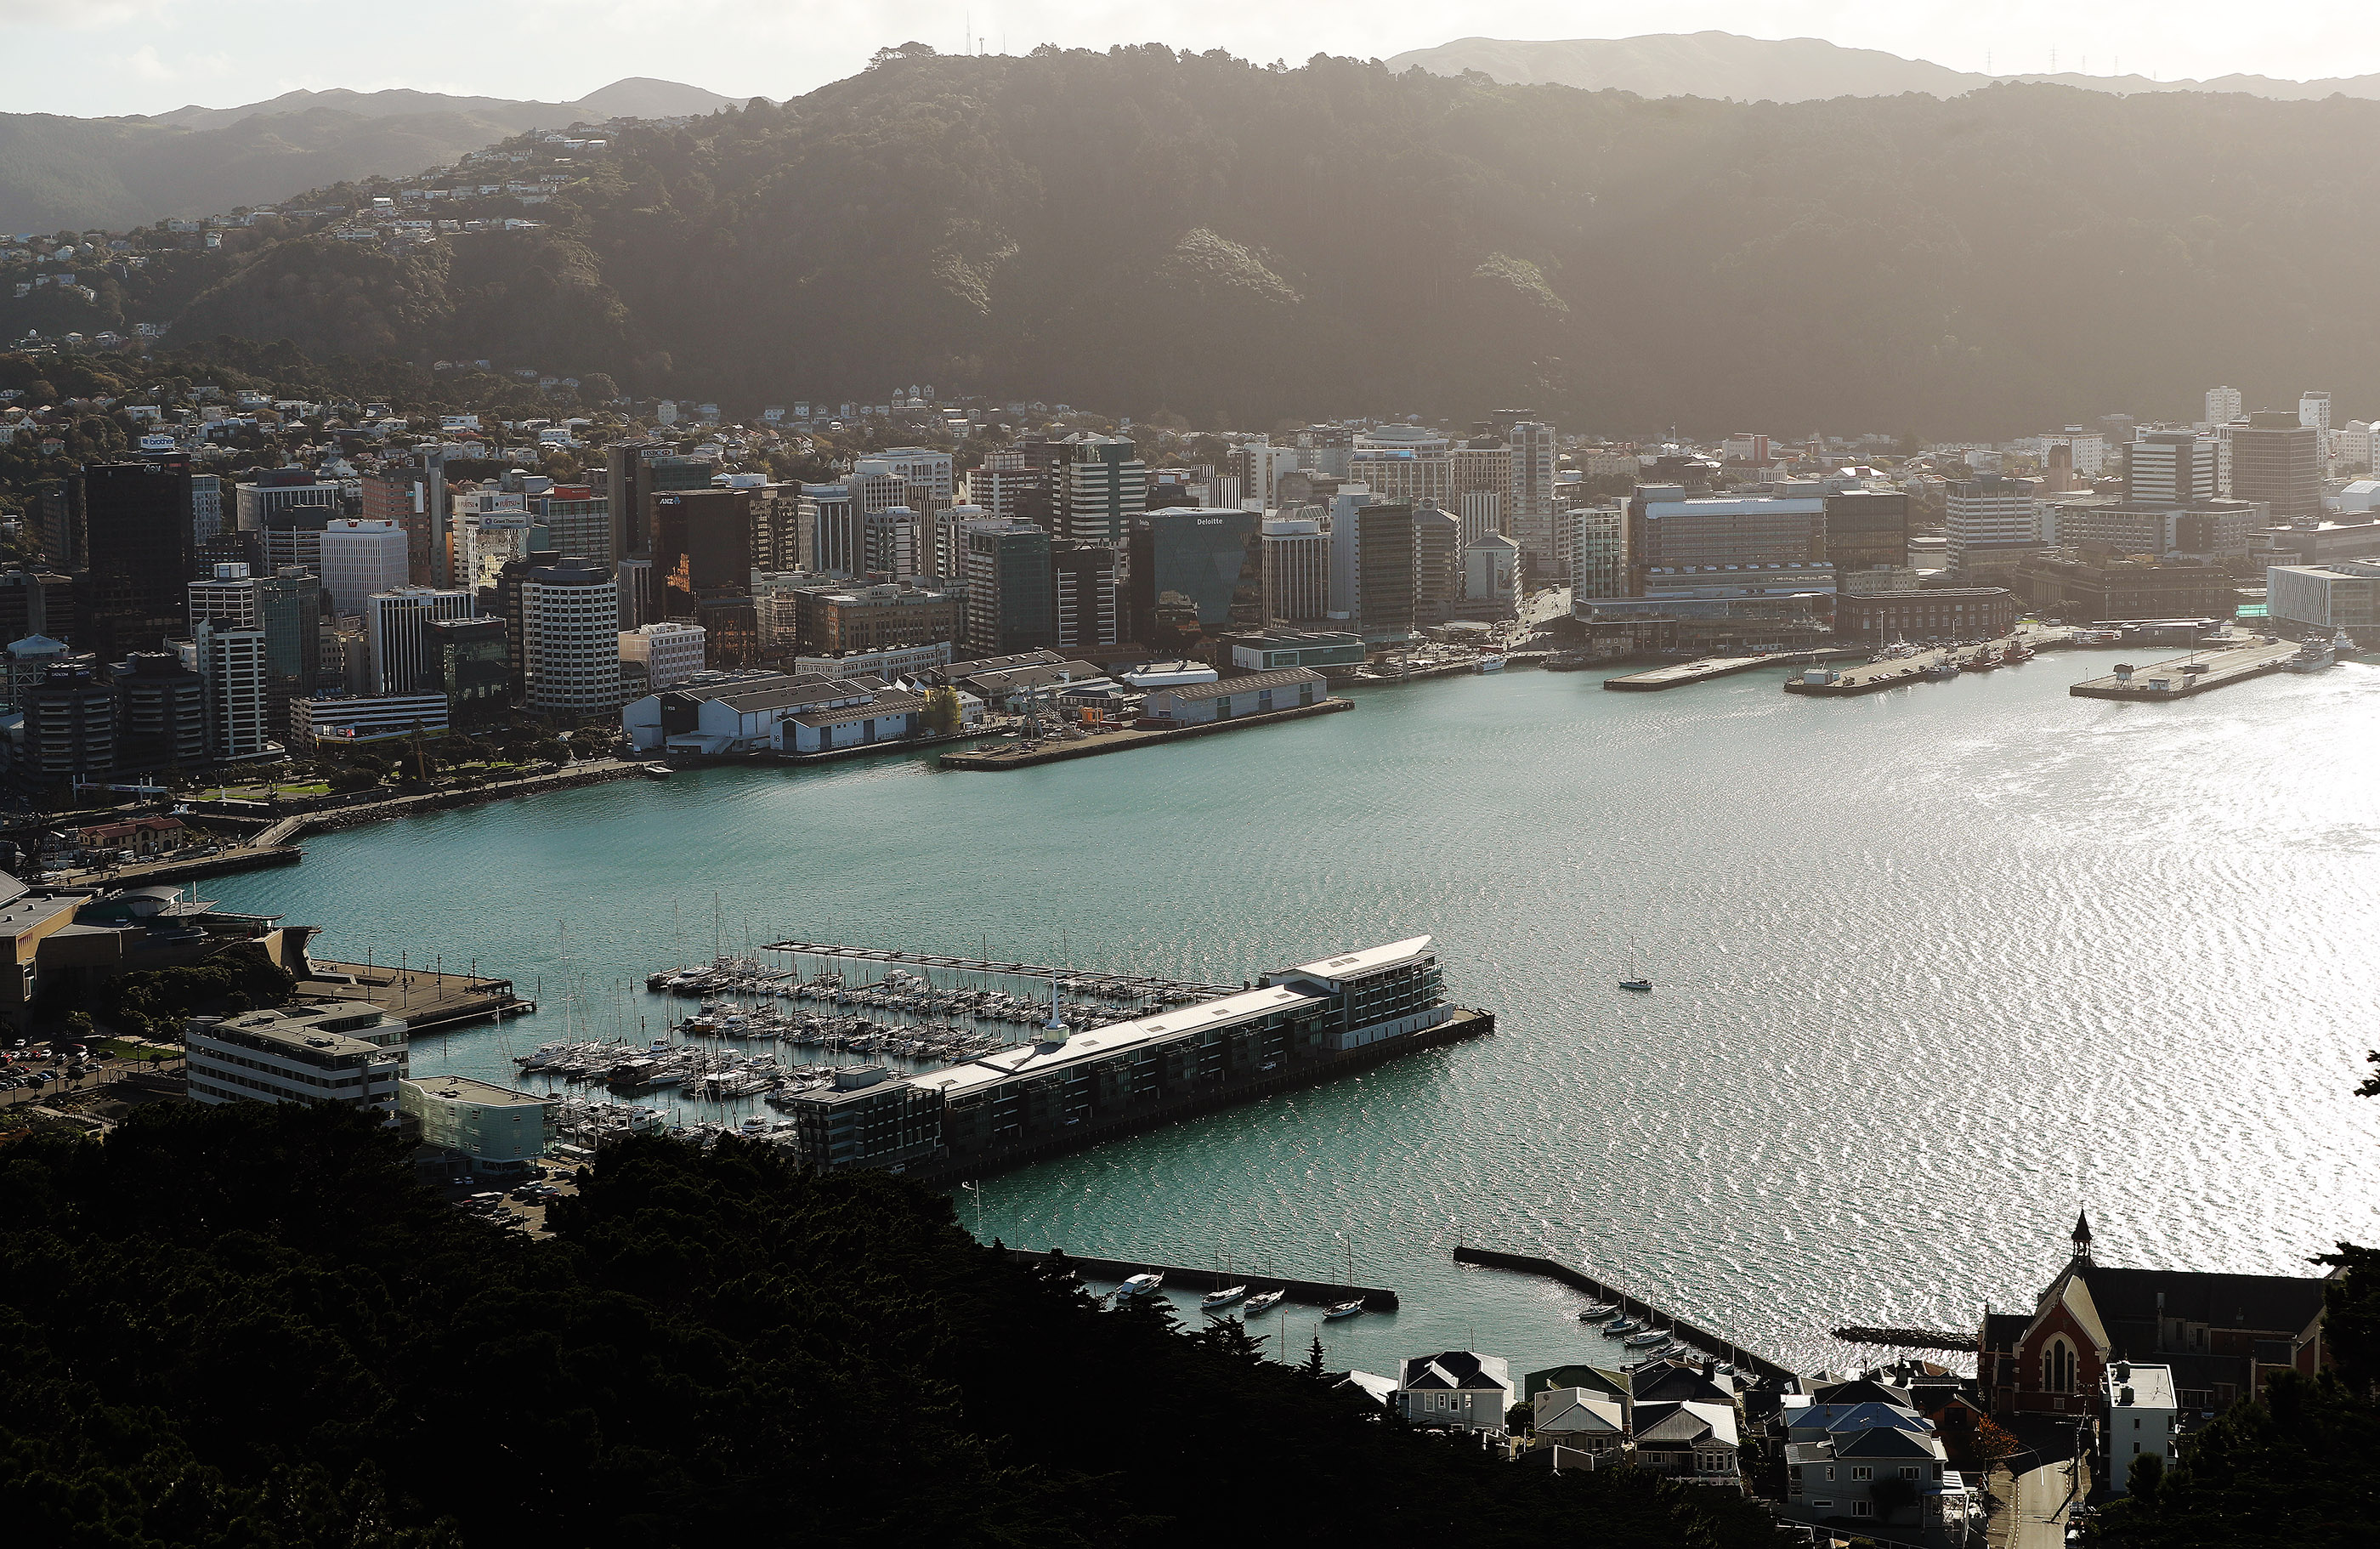 The harbour in Wellington, New Zealand on Sunday, May 19, 2019.